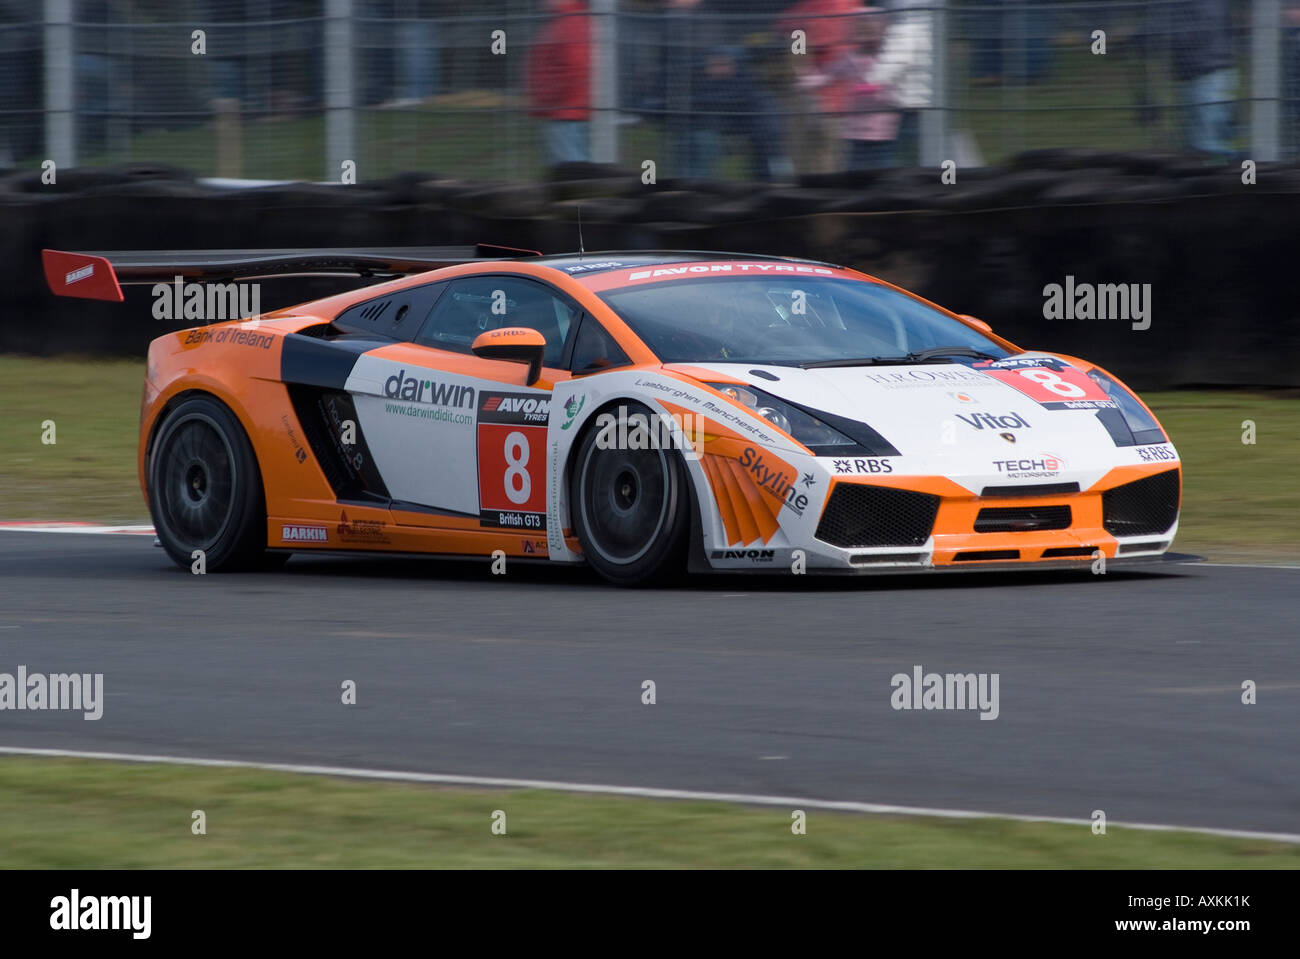 Lamborghini Gallardo Gt3 Sports Racing Car In British Gt